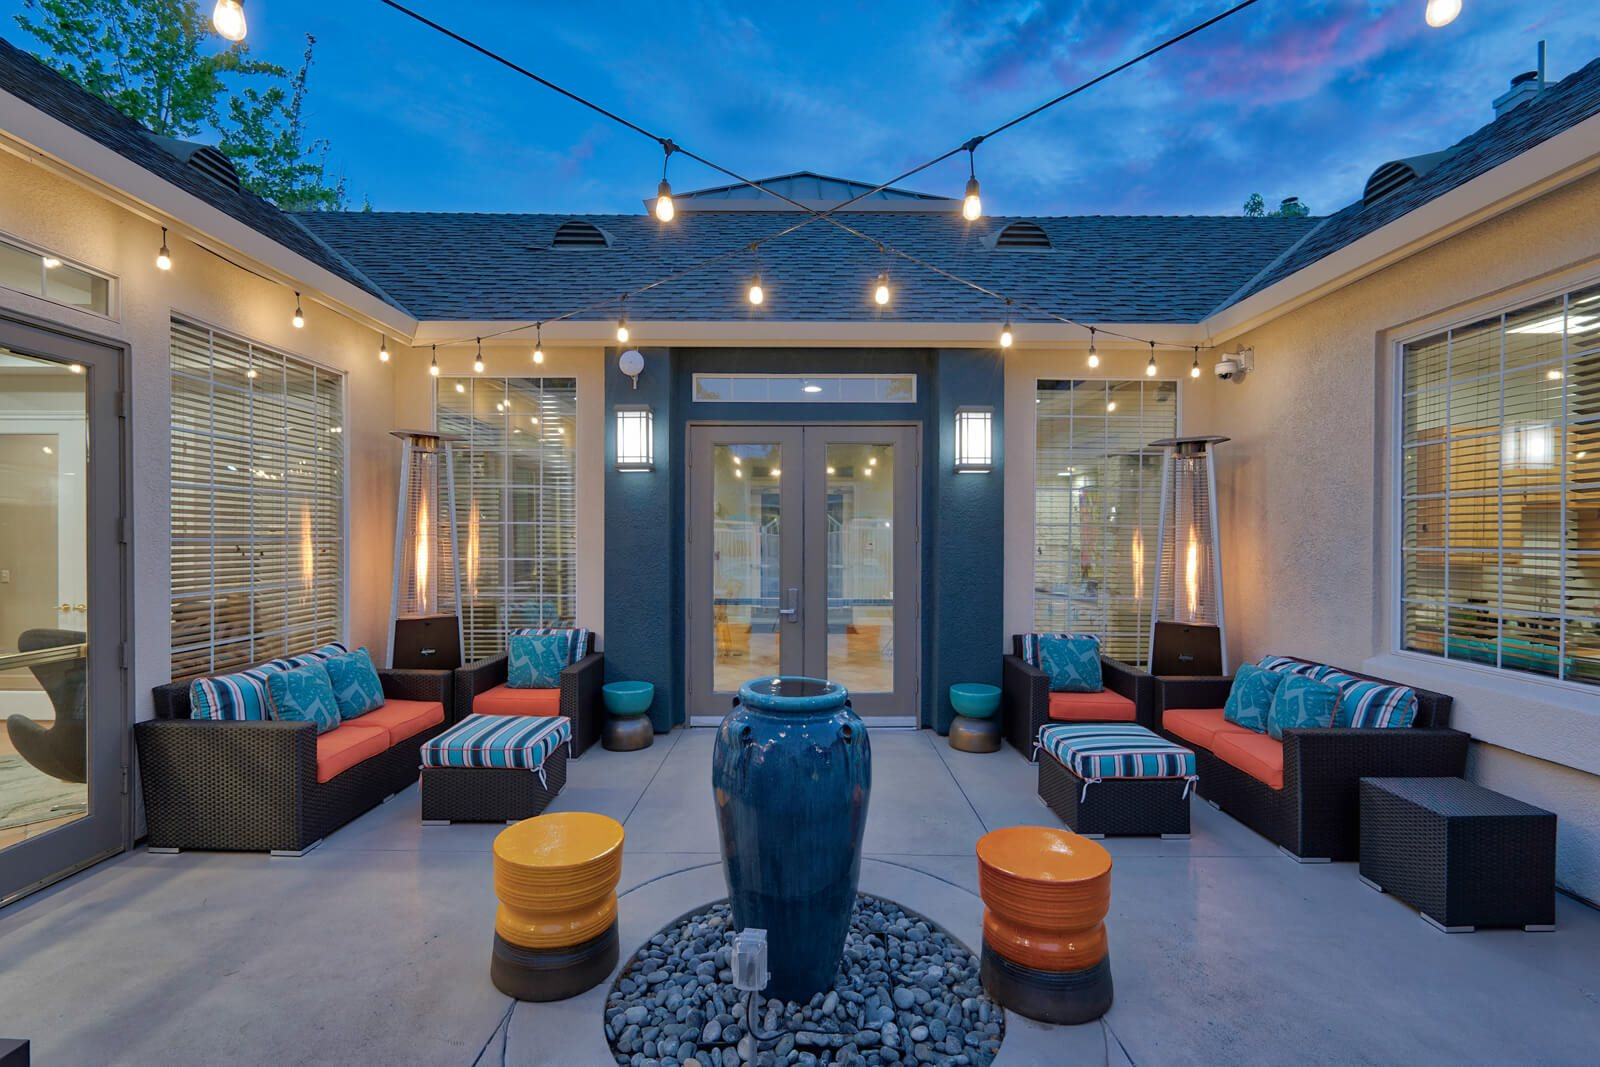 Poolside Lounge With Ample Sitting at Pavona Apartments, 760 N. 7th Street, San Jose